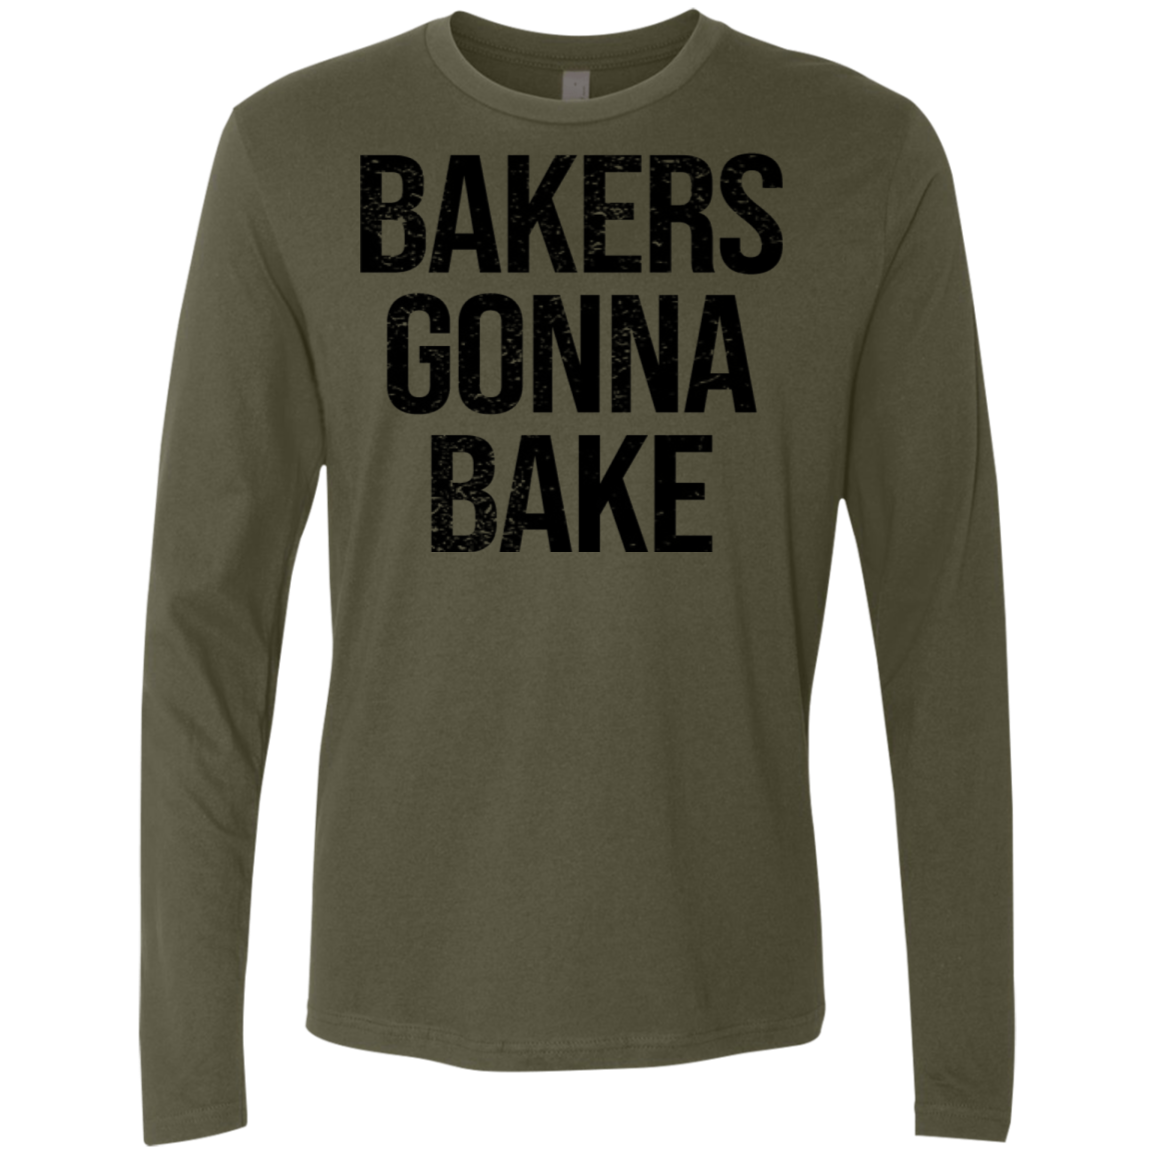 Bakers Gonna Bake Men's Long Sleeve Tee